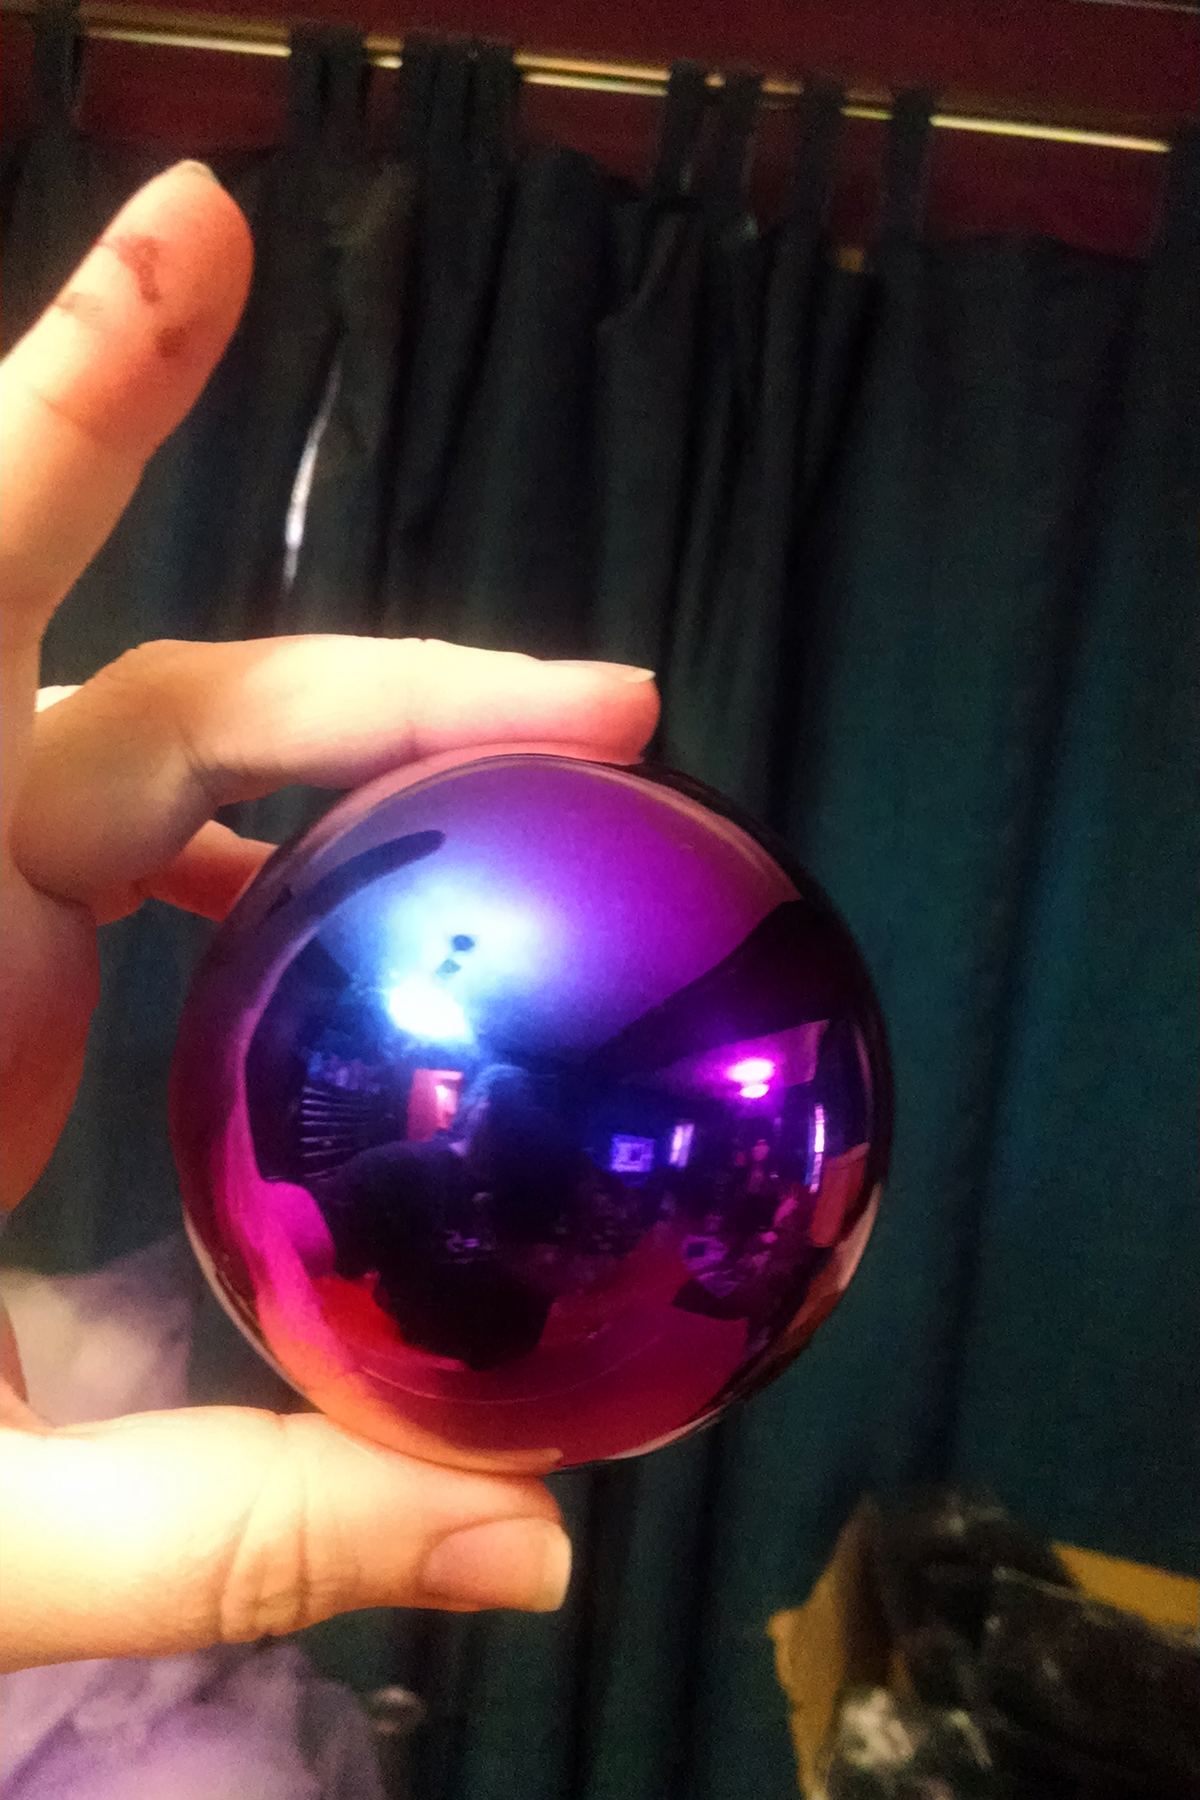 A hand holds up a glass gazing ball. It looks like a brightly coloured oil slick, purple with blues and yellows.